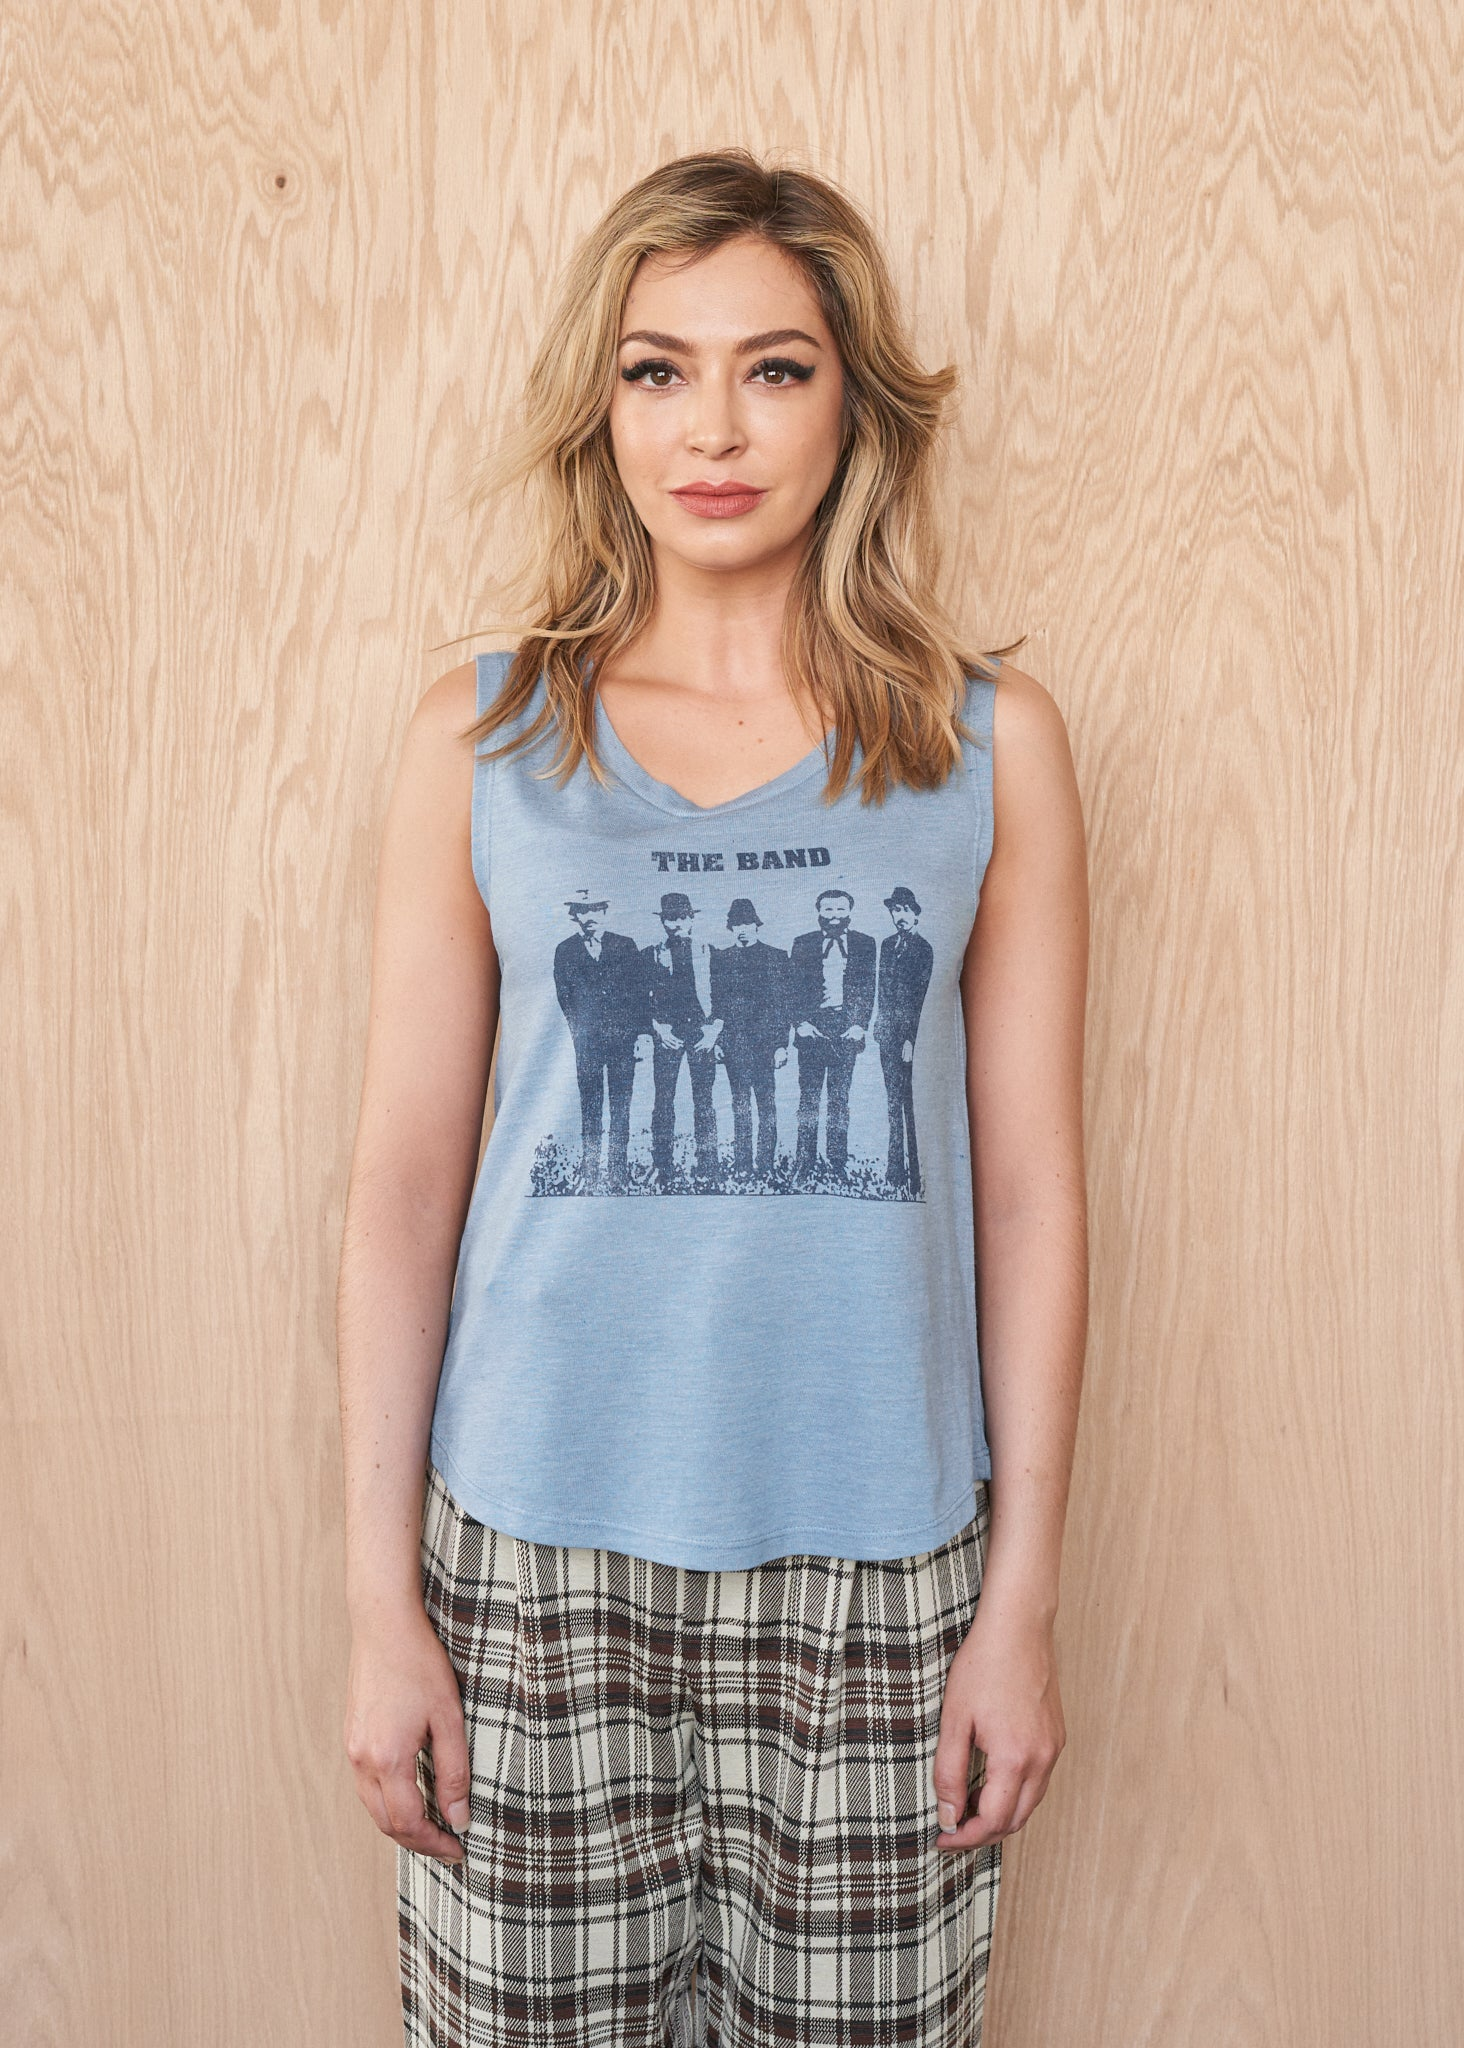 The Band Group Photo Muscle Tee - Women's Muscle Tee - Midnight Rider